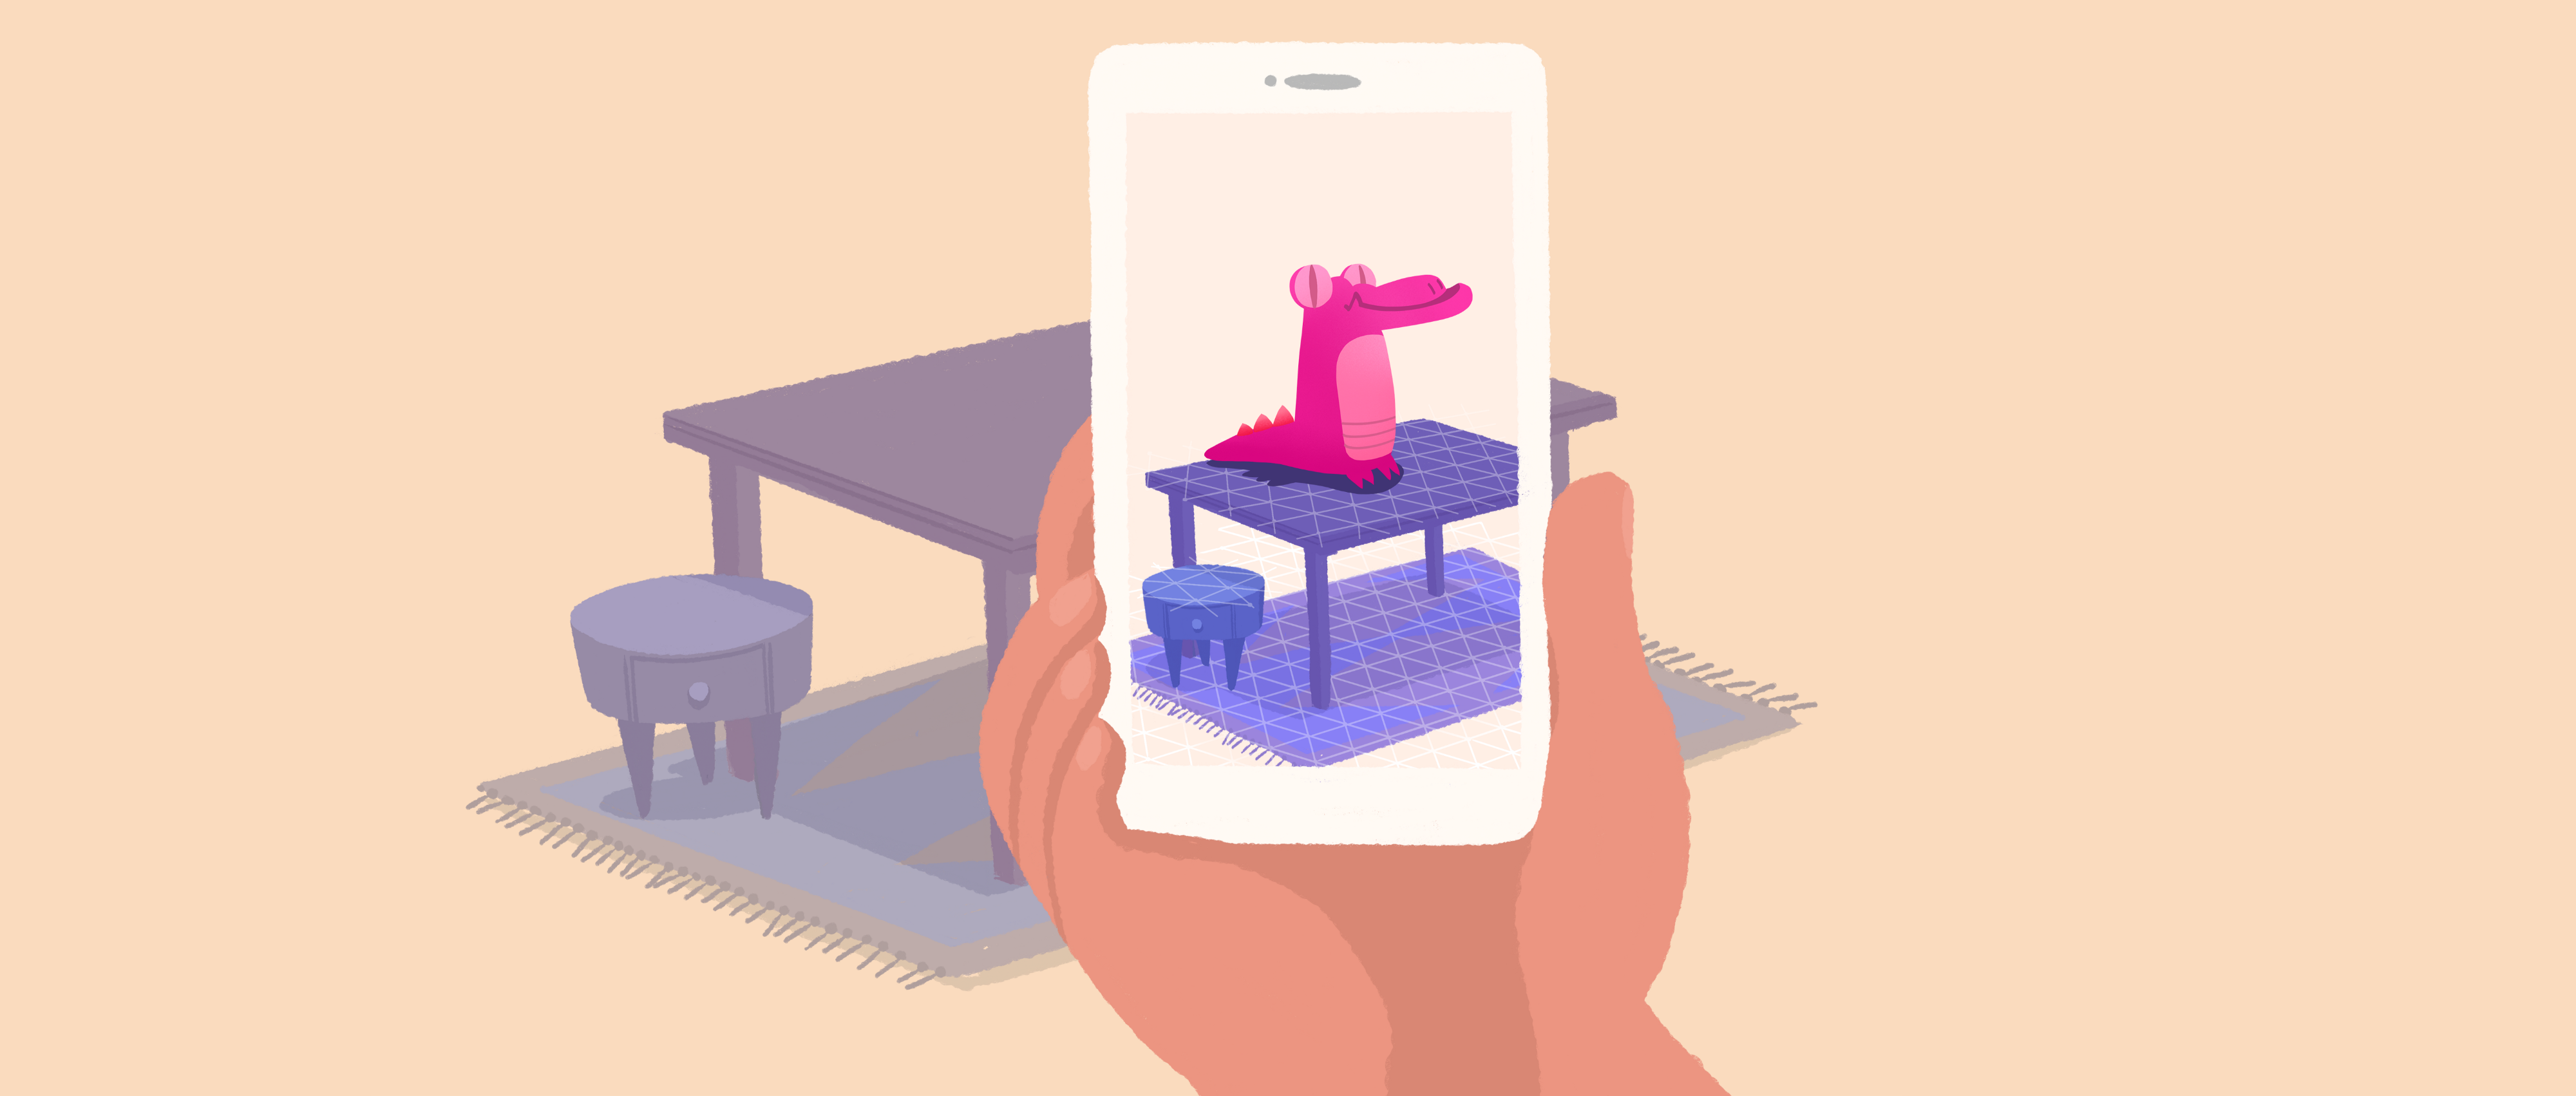 Mobile Augmented Reality - AR/VR Journey: Augmented